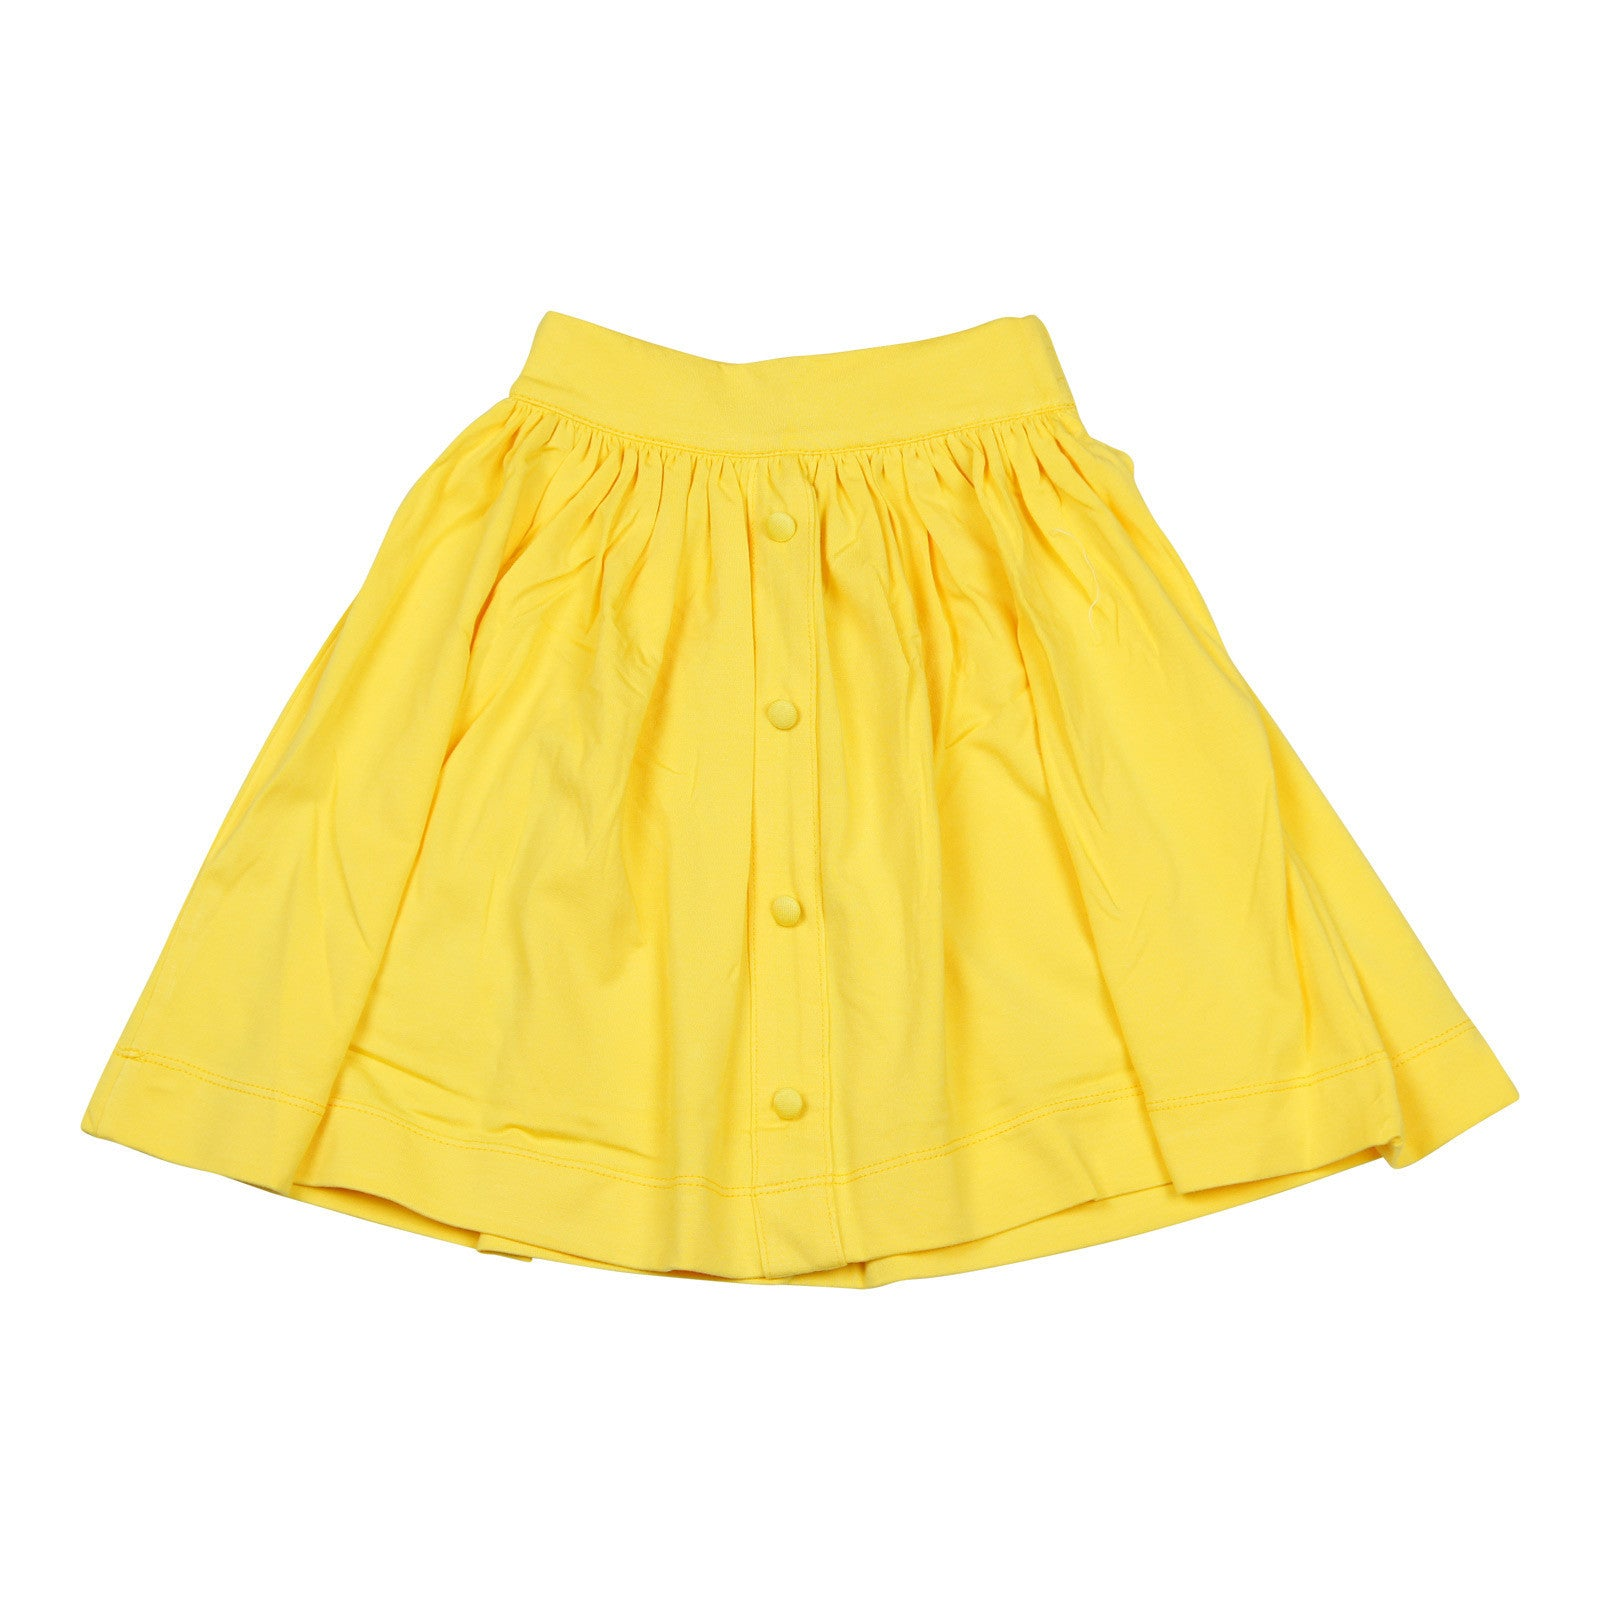 Teela Knit Button Yellow Skirt